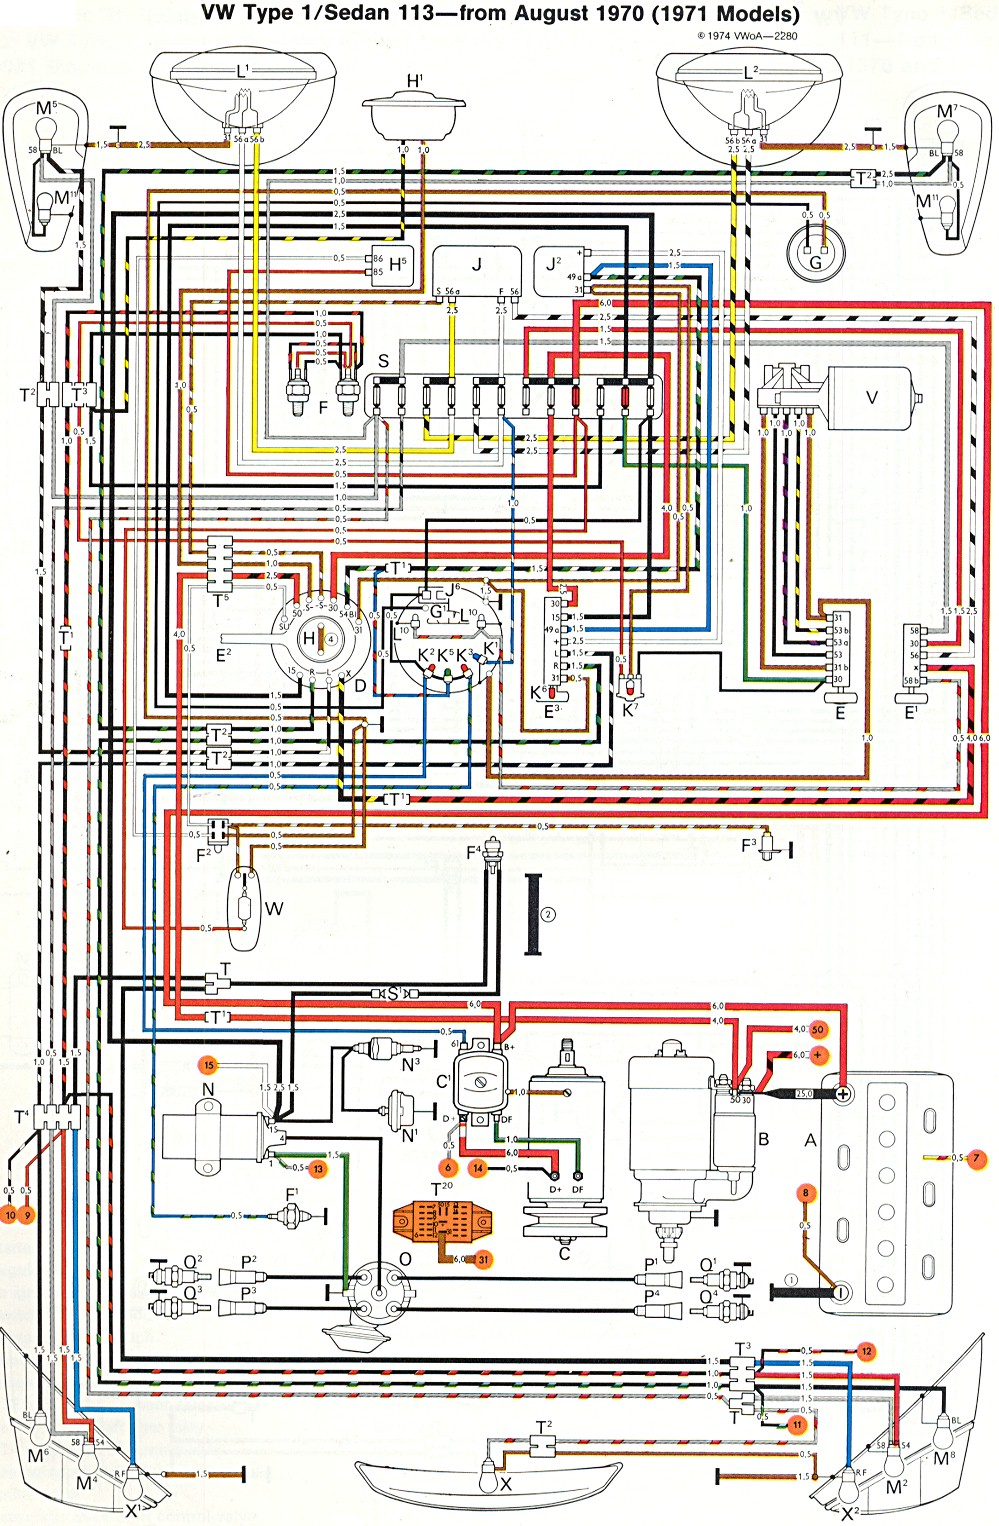 1971 super beetle wiring diagram | thegoldenbug.com super beetle fuse box wiring 1974 super beetle fuse box